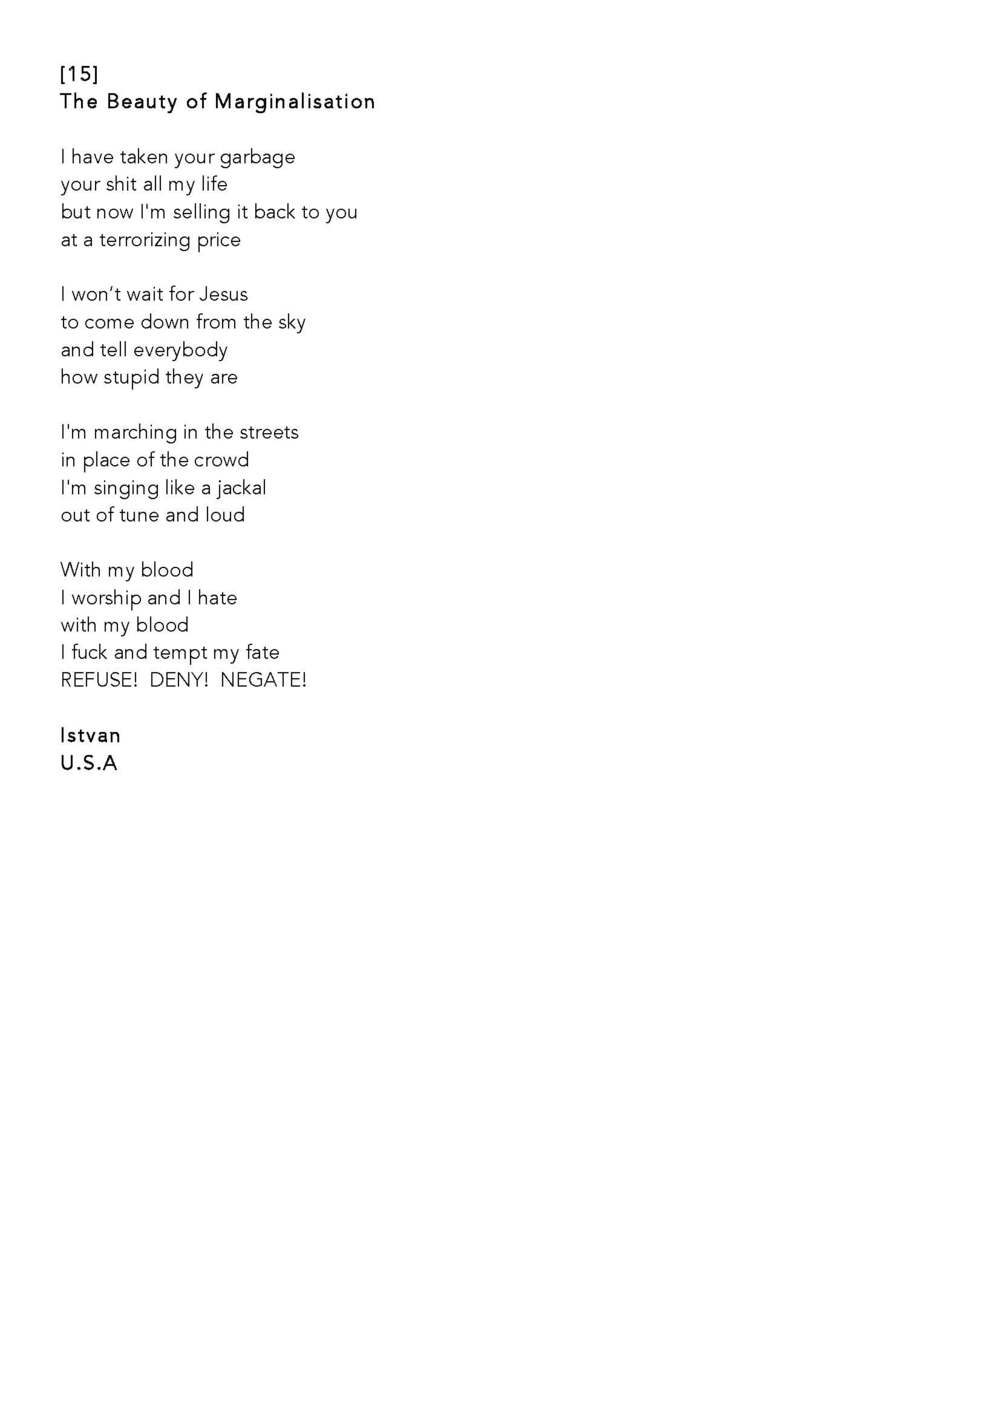 Poetry Collection - Everyone can Poetry _ For 16 Sept 2014_Page_15.jpg